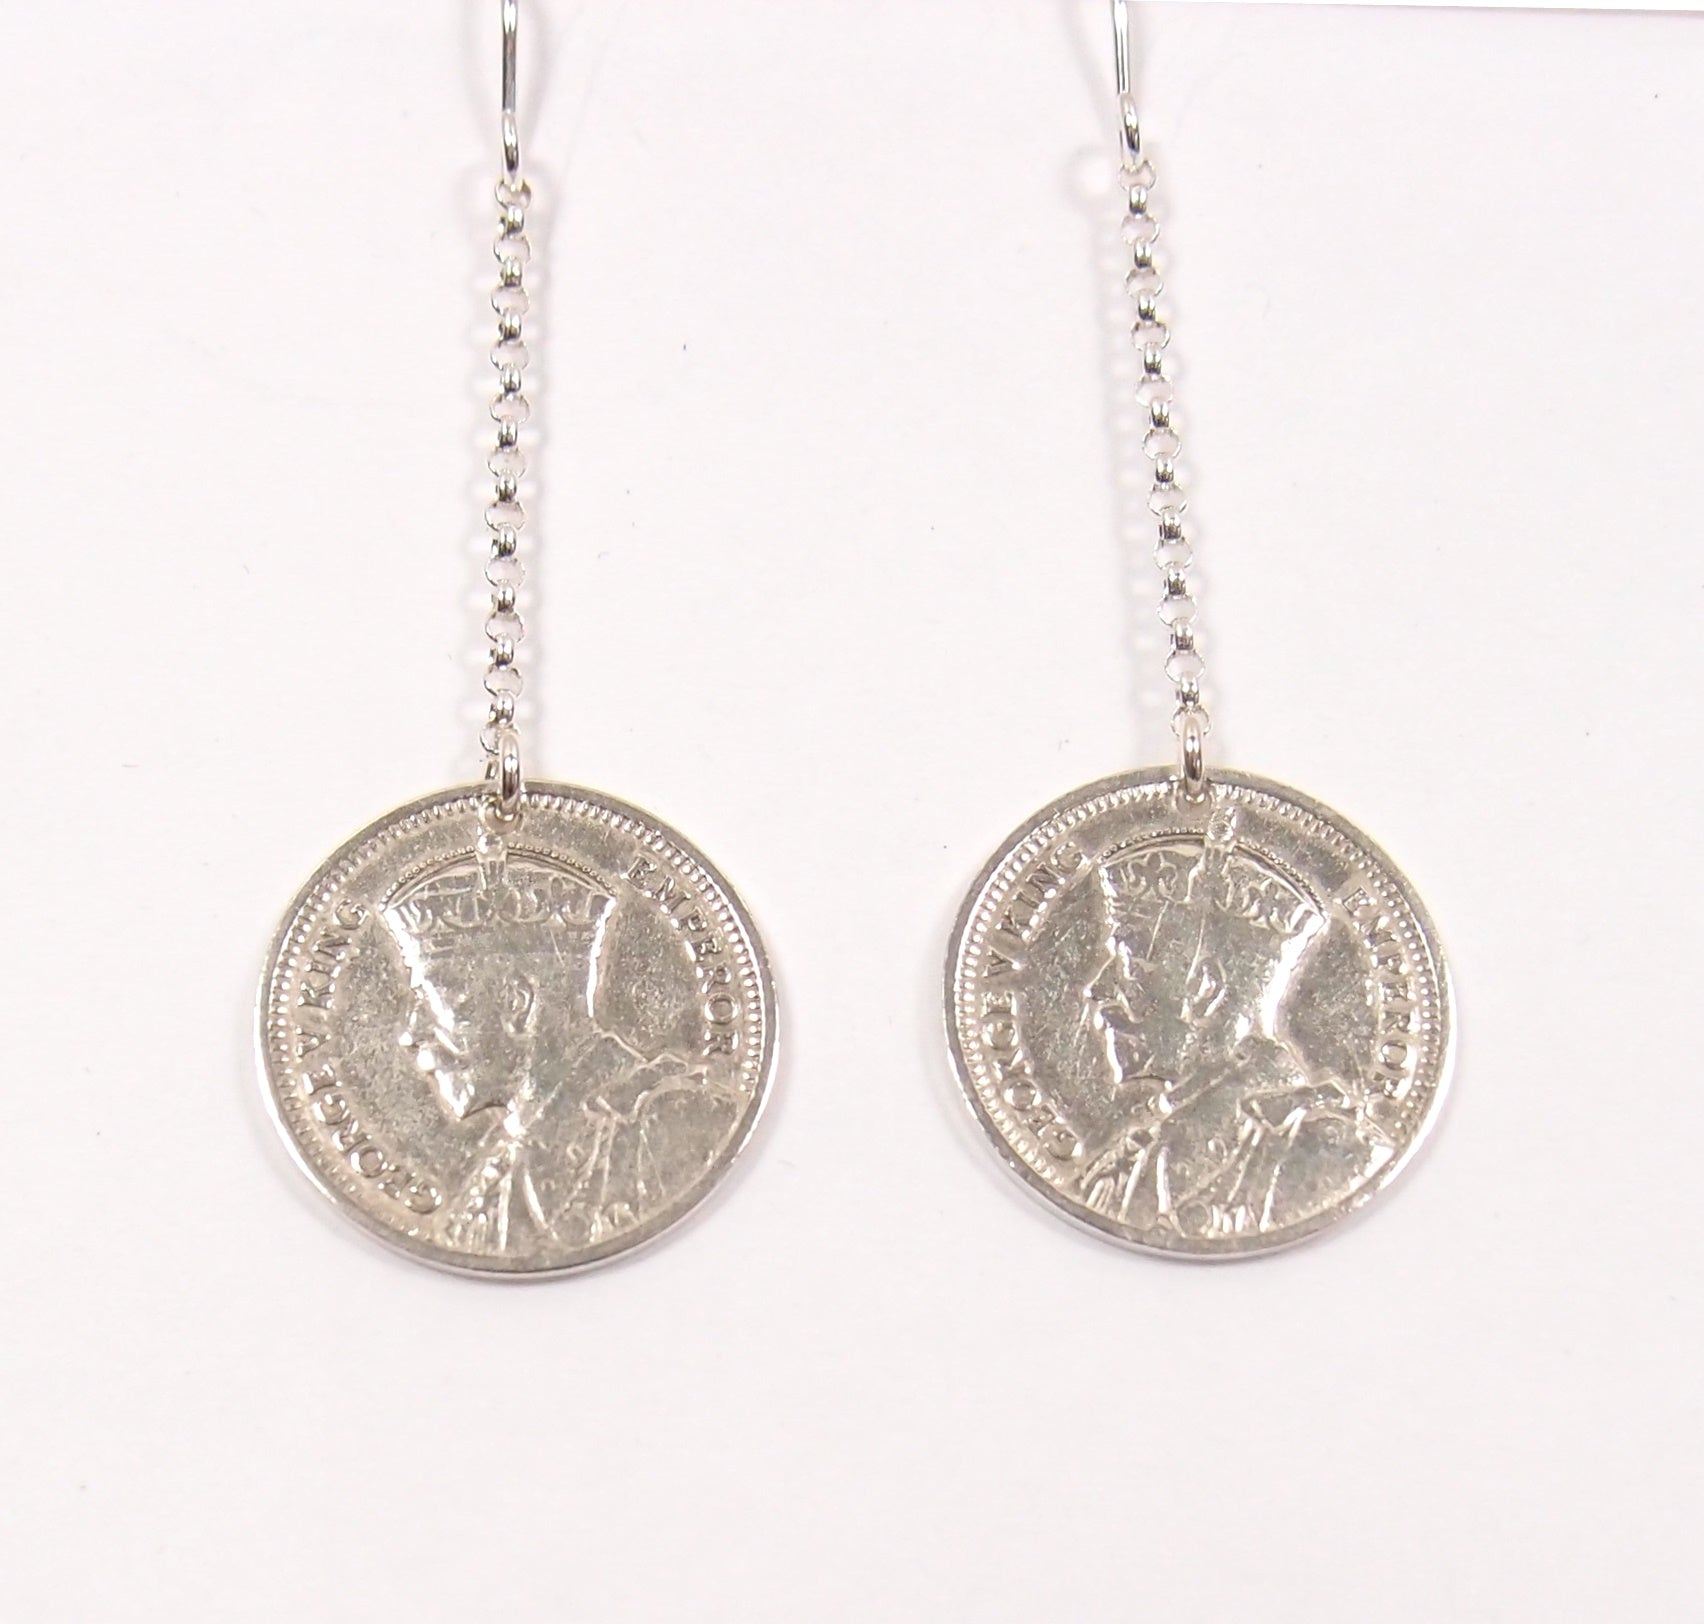 Threepenny Earrings; Drops on Chains: The Coin Collection